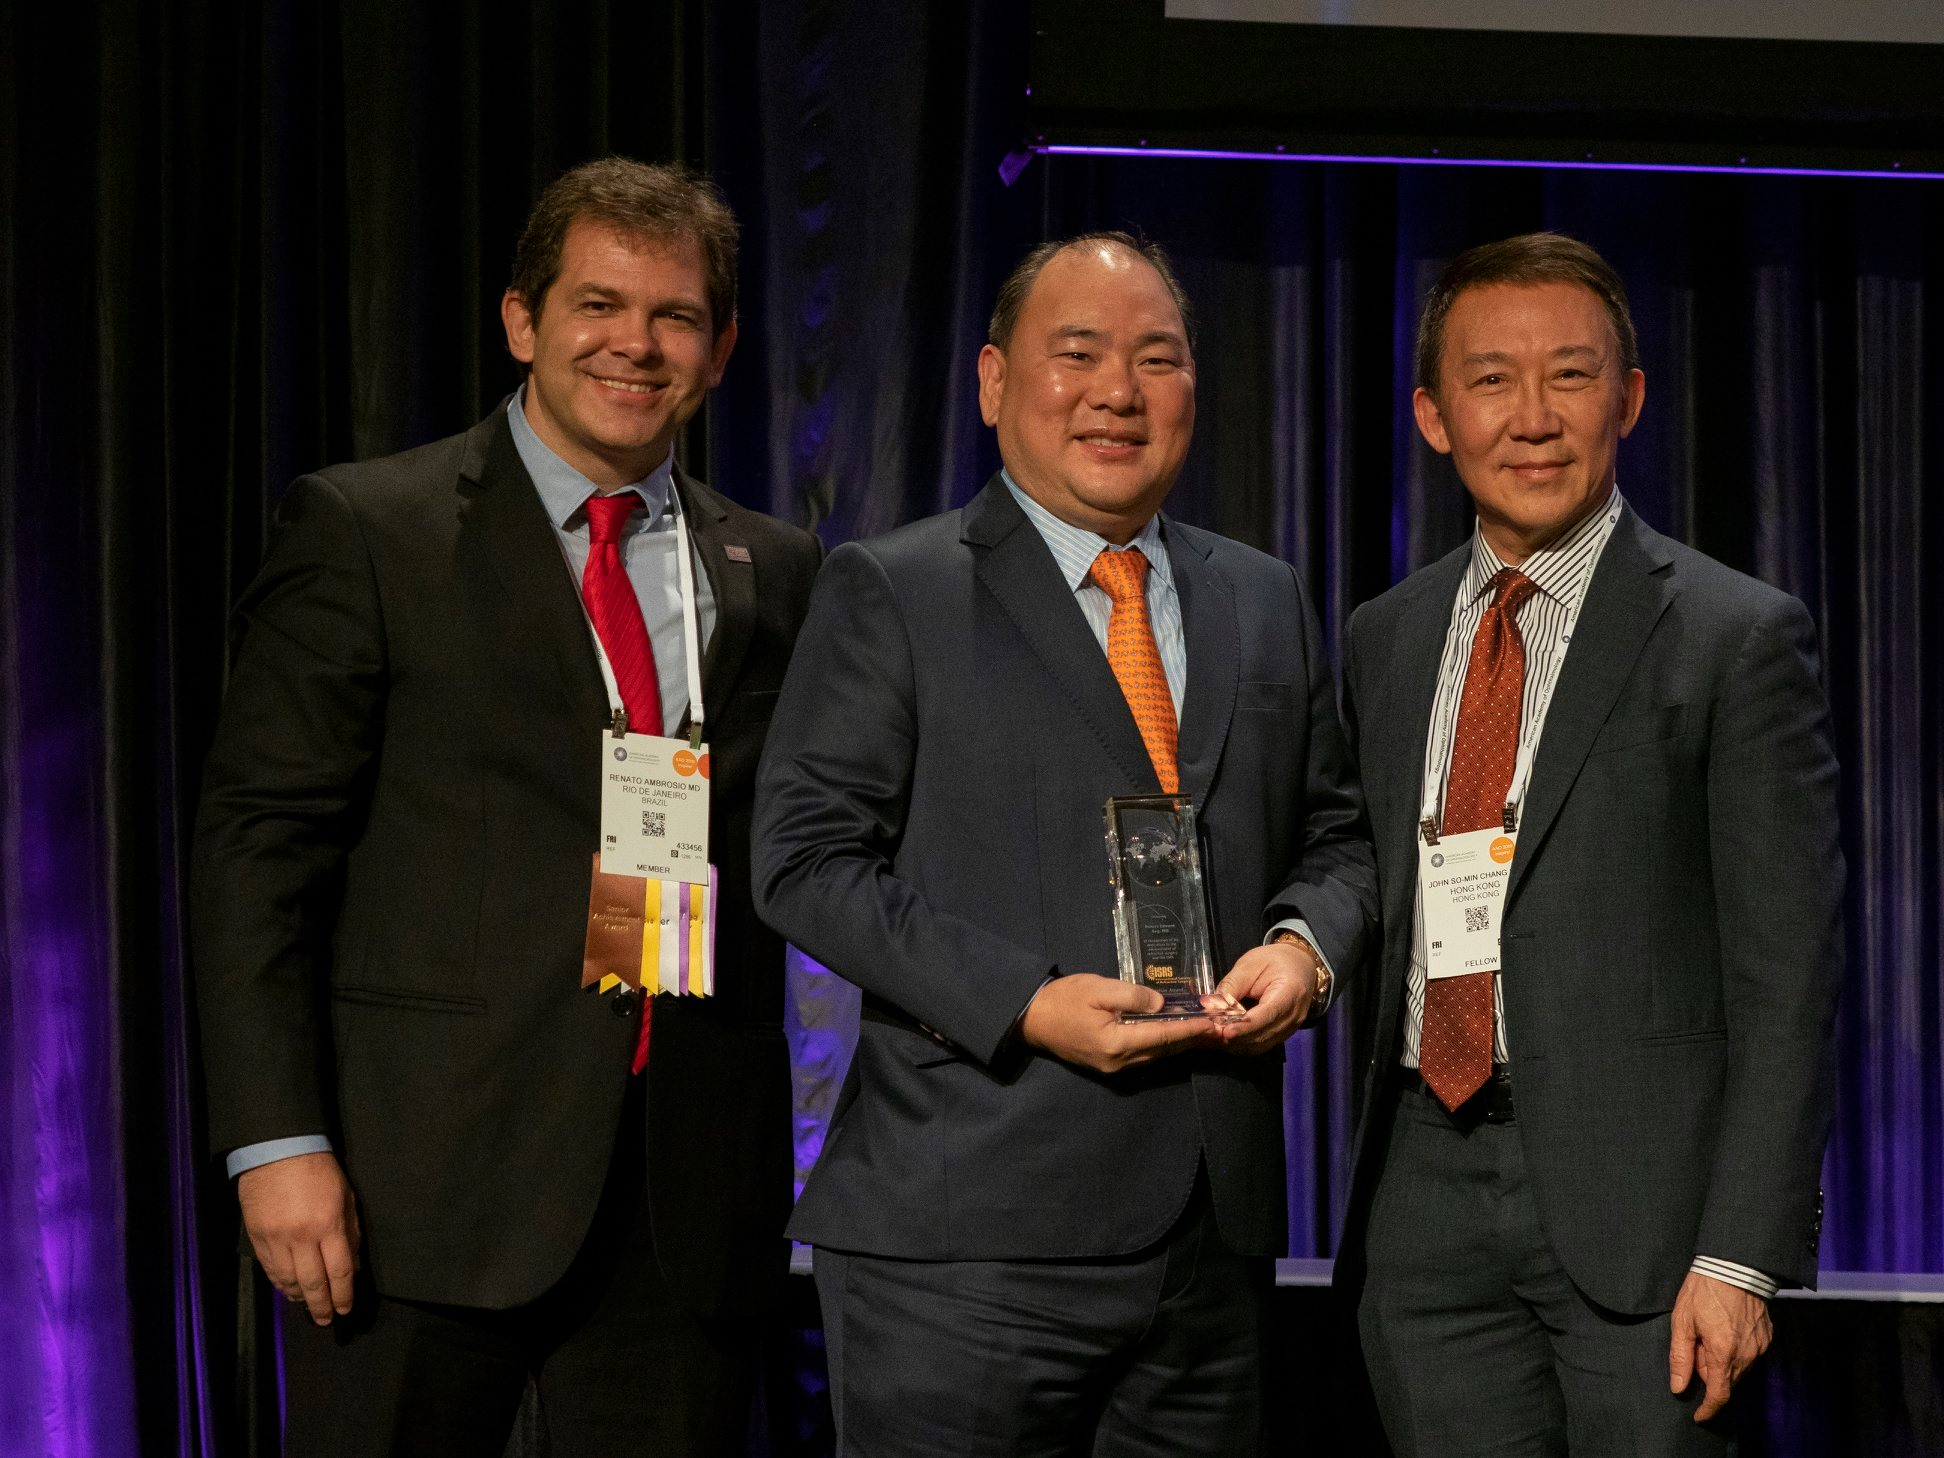 Dr. Robert Ang receives the Presidential Recognition Award from ISRS executive committee member Dr. Renato Ambrosio and ISRS president Dr. John So-Min Chang